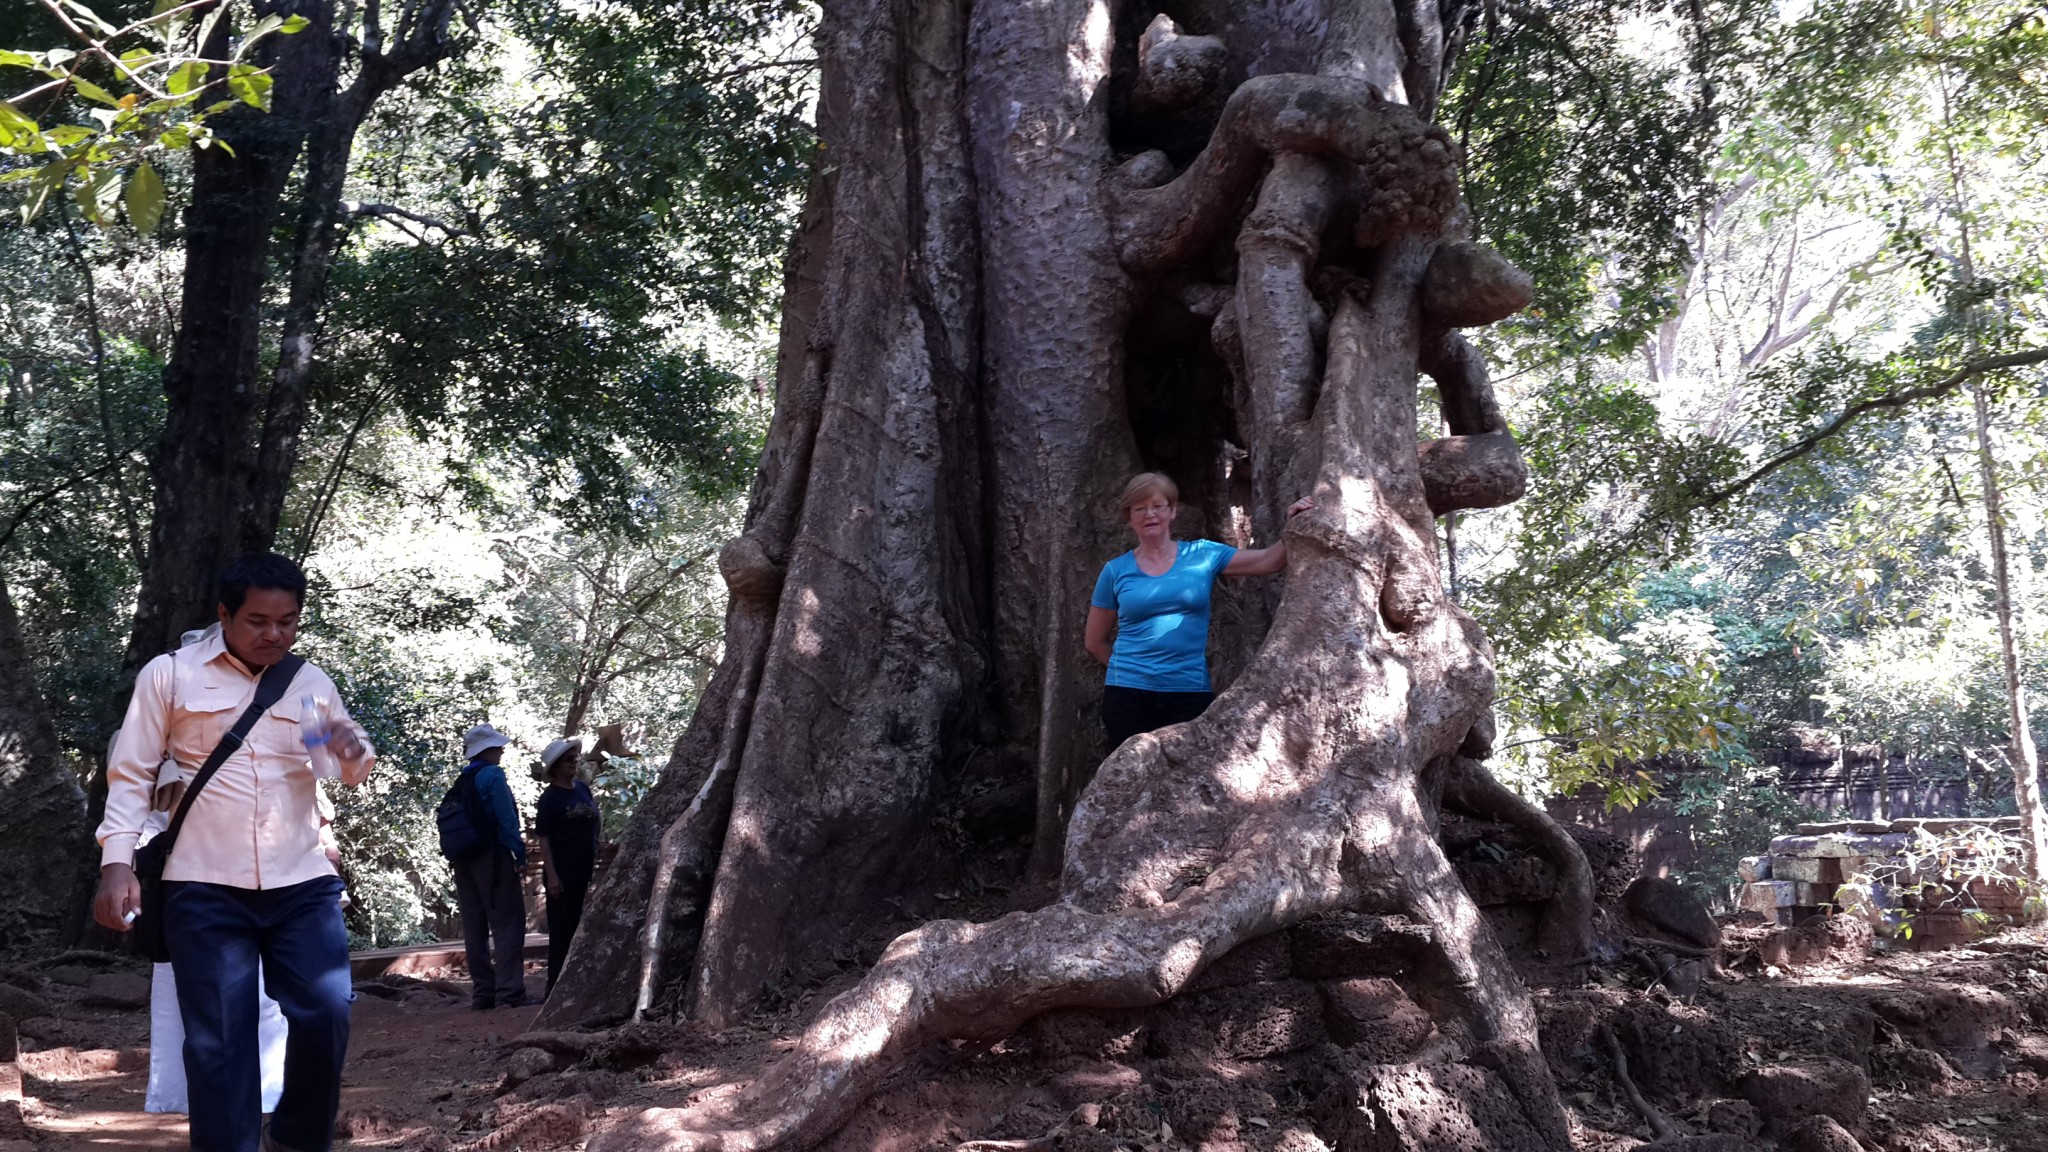 Mum standing in the sprawling roots of a massive tree. Trees like these were responsible for demolishing large sections of the buildings within the site when it was abandoned due to water influx.